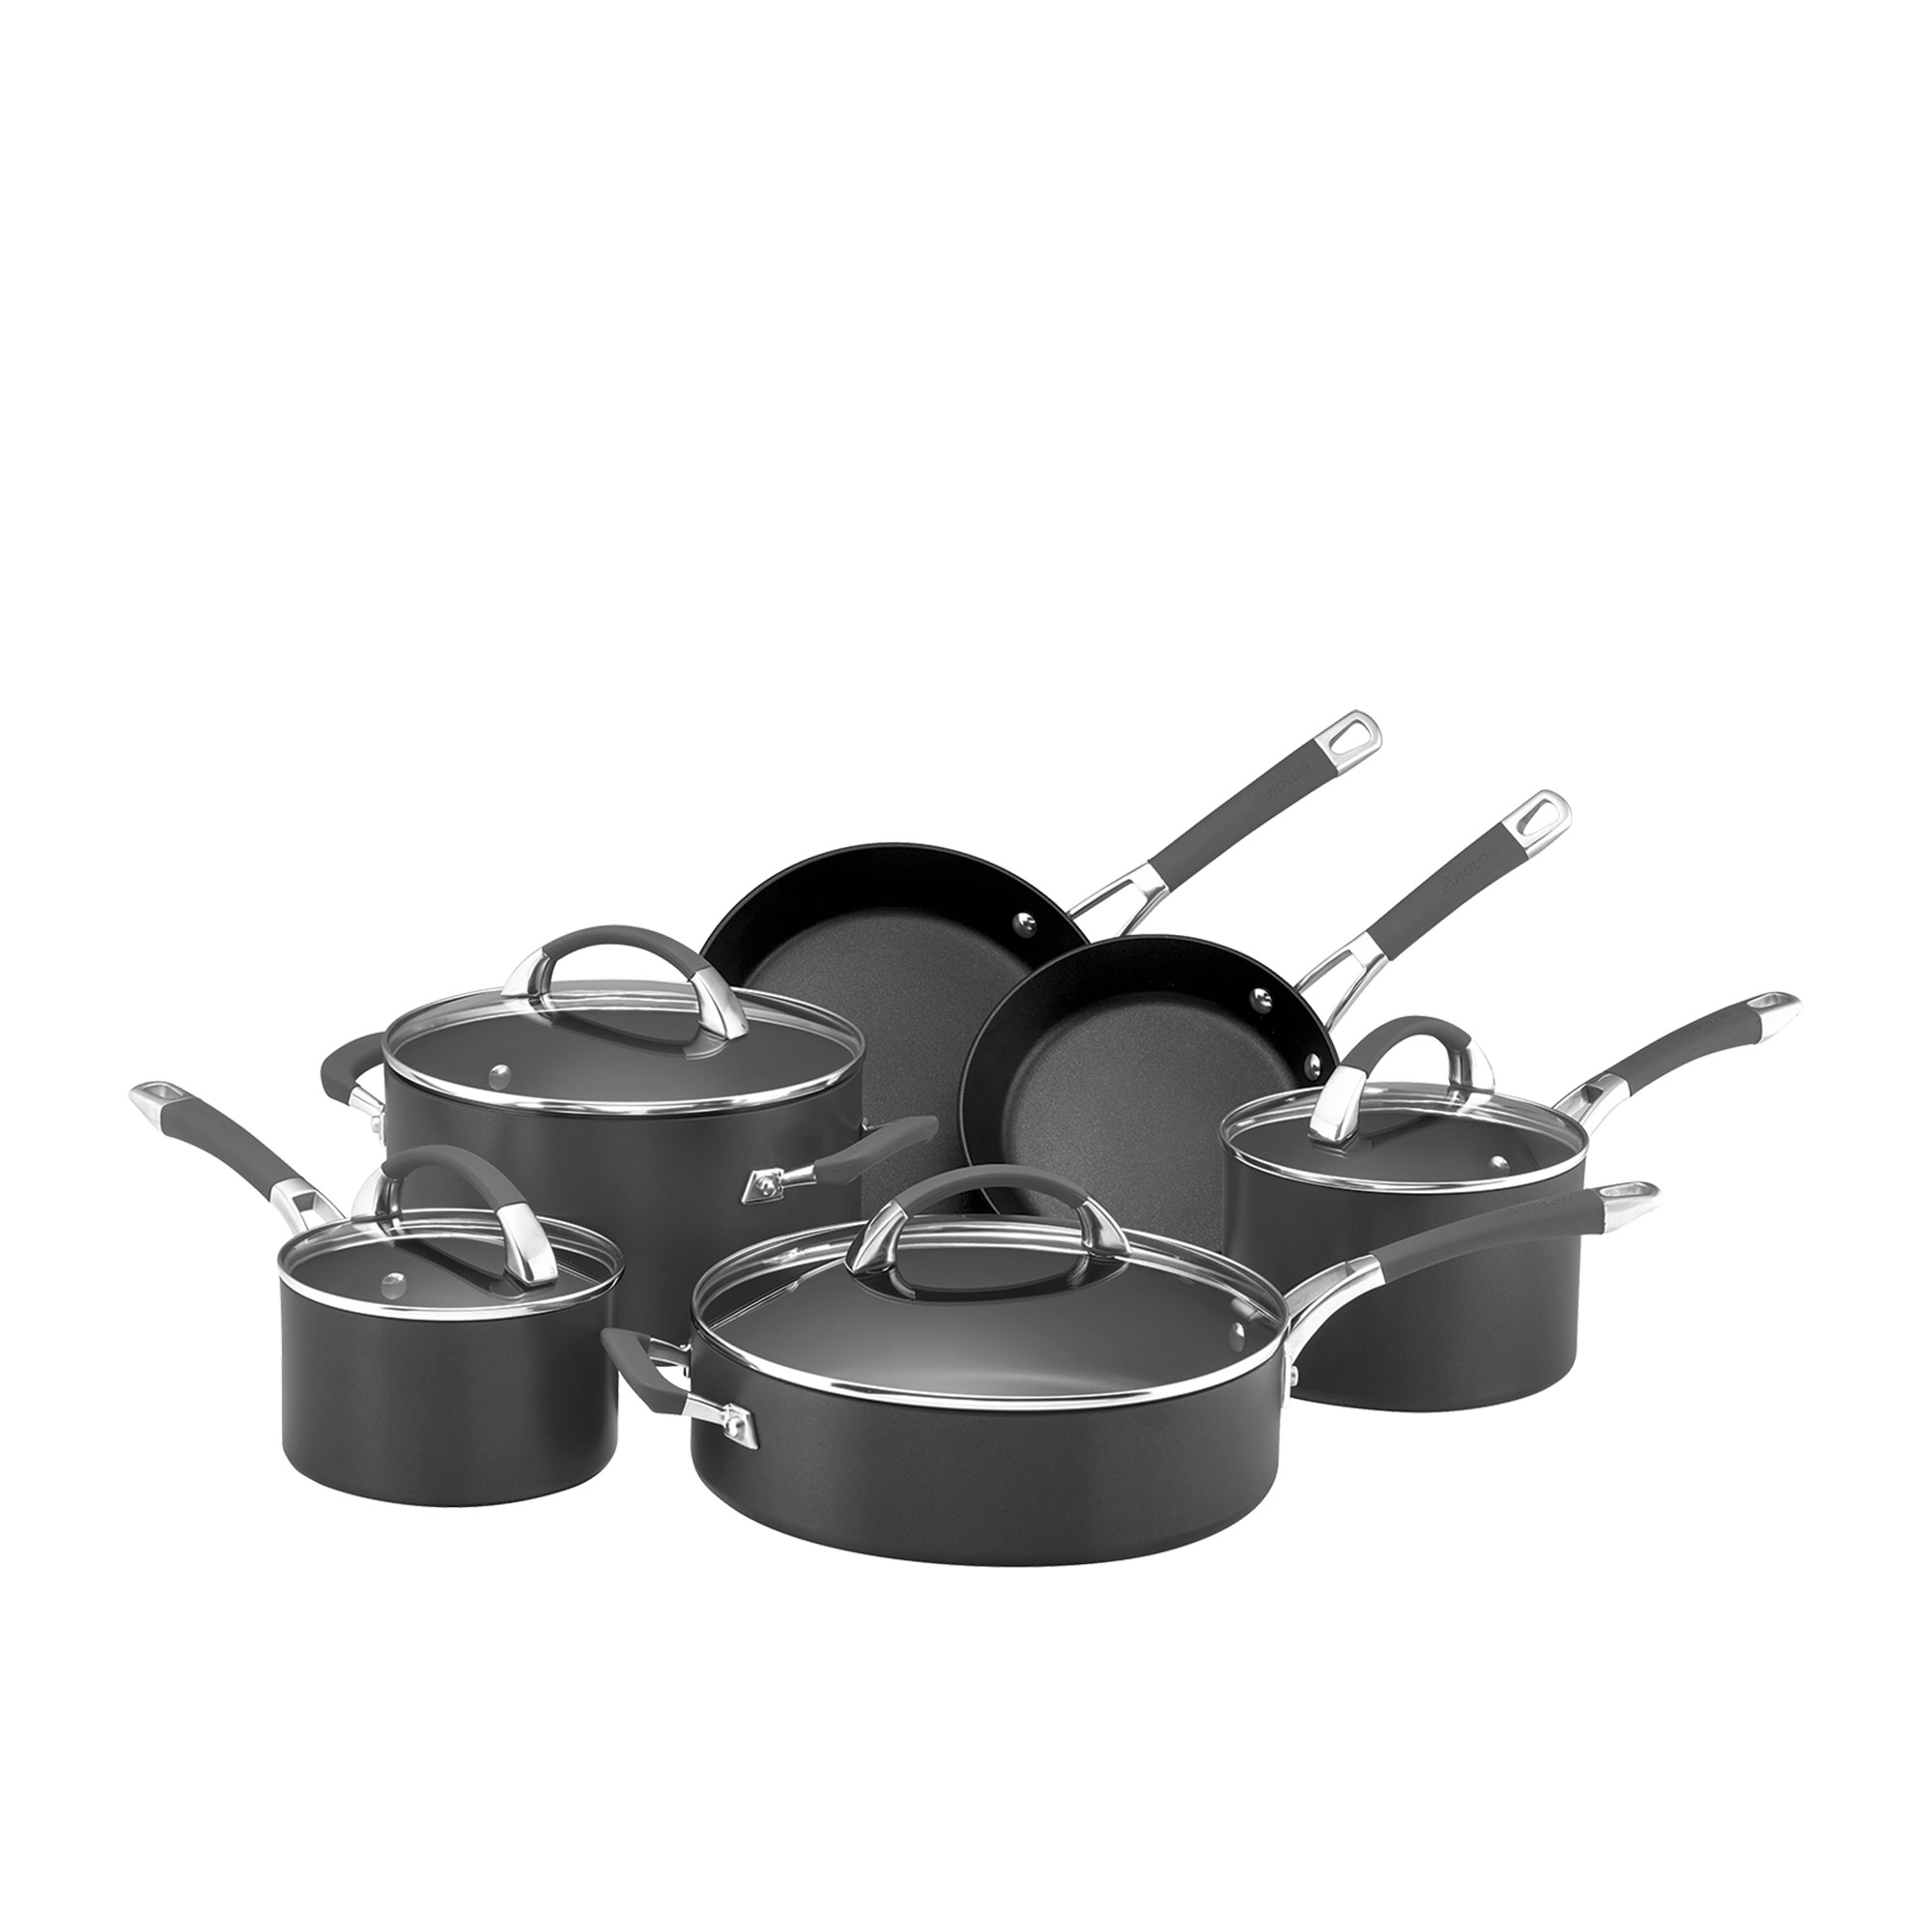 Anolon Endurance+ 6pc Cookware Set